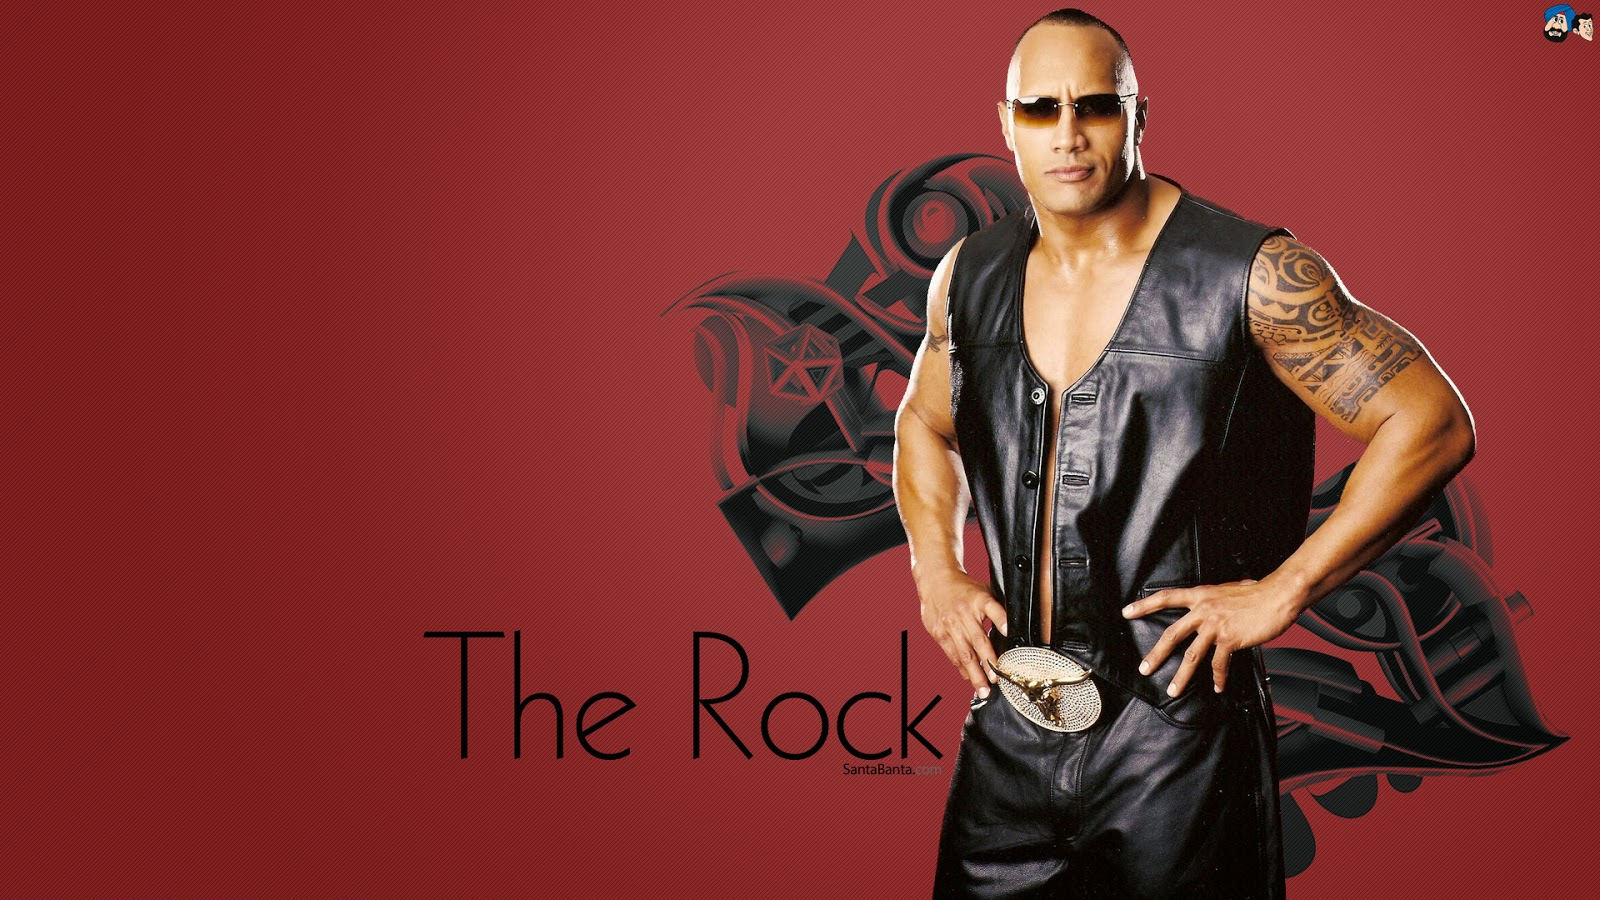 here you can free download The rock hd wallpapers.